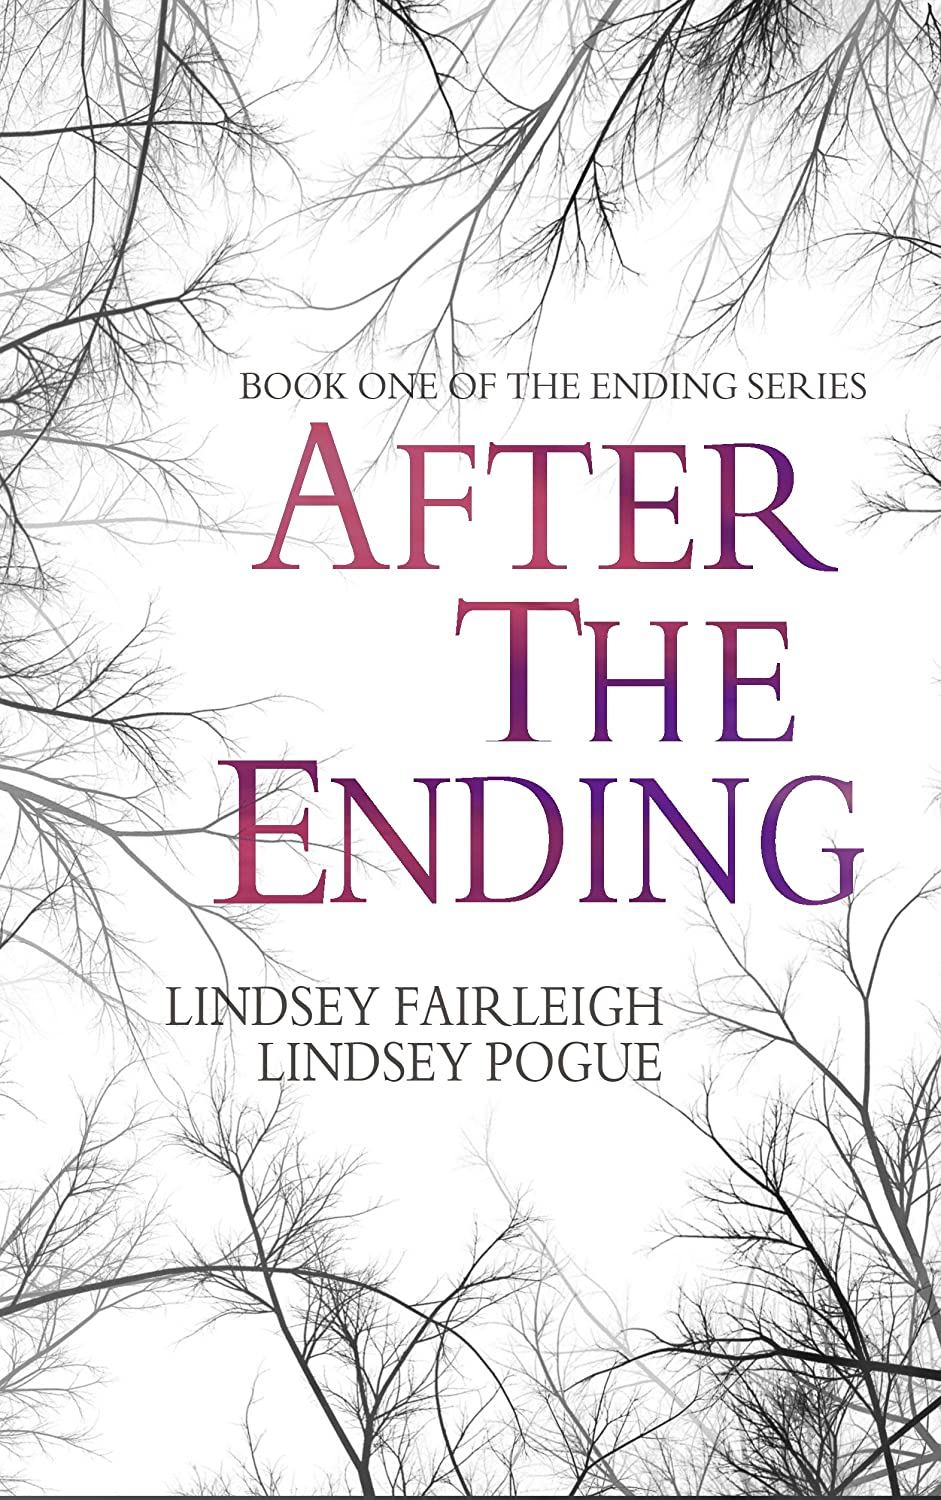 After-The-Ending-ebook-cover-OFFICIAL-redesigned-smaller